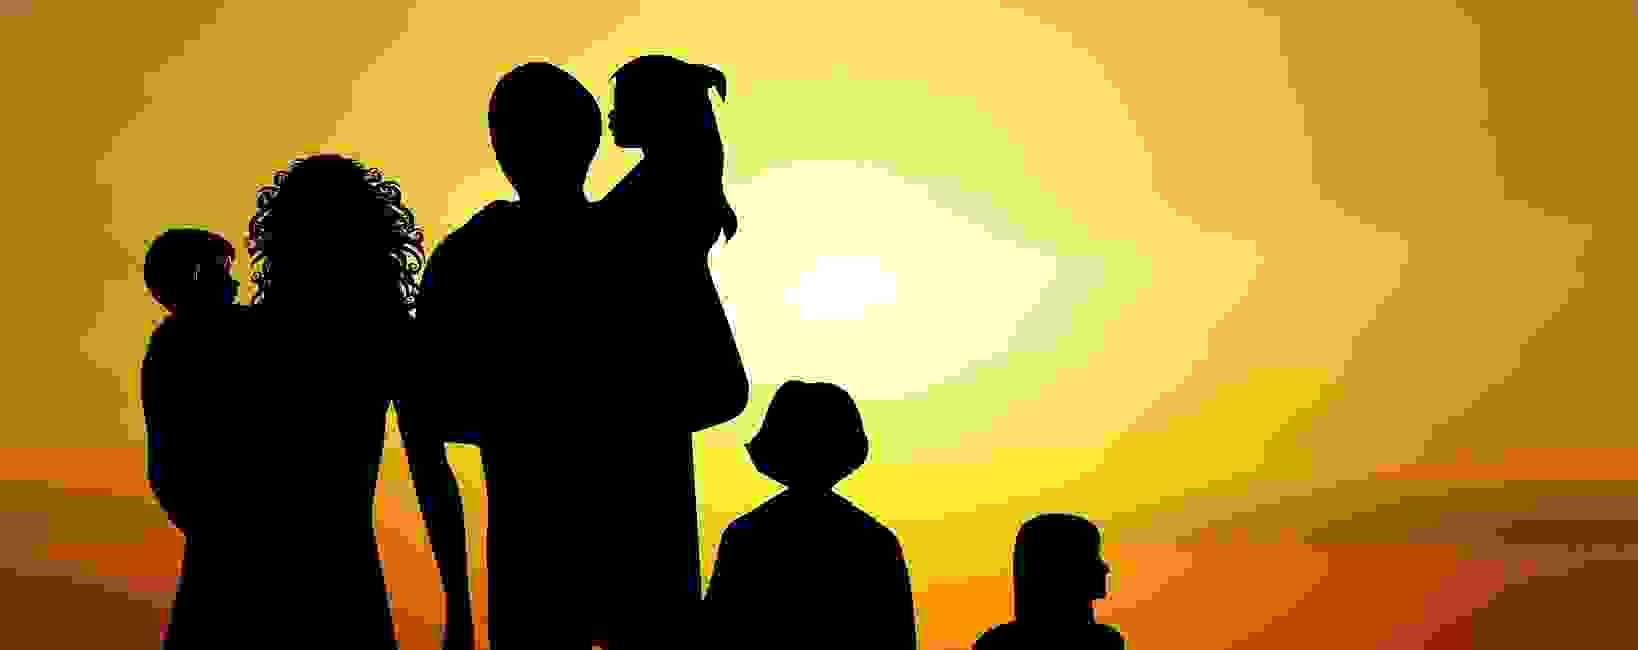 Silhouette of a family on the beach looking out over a sunset, signifying hope and optimism.